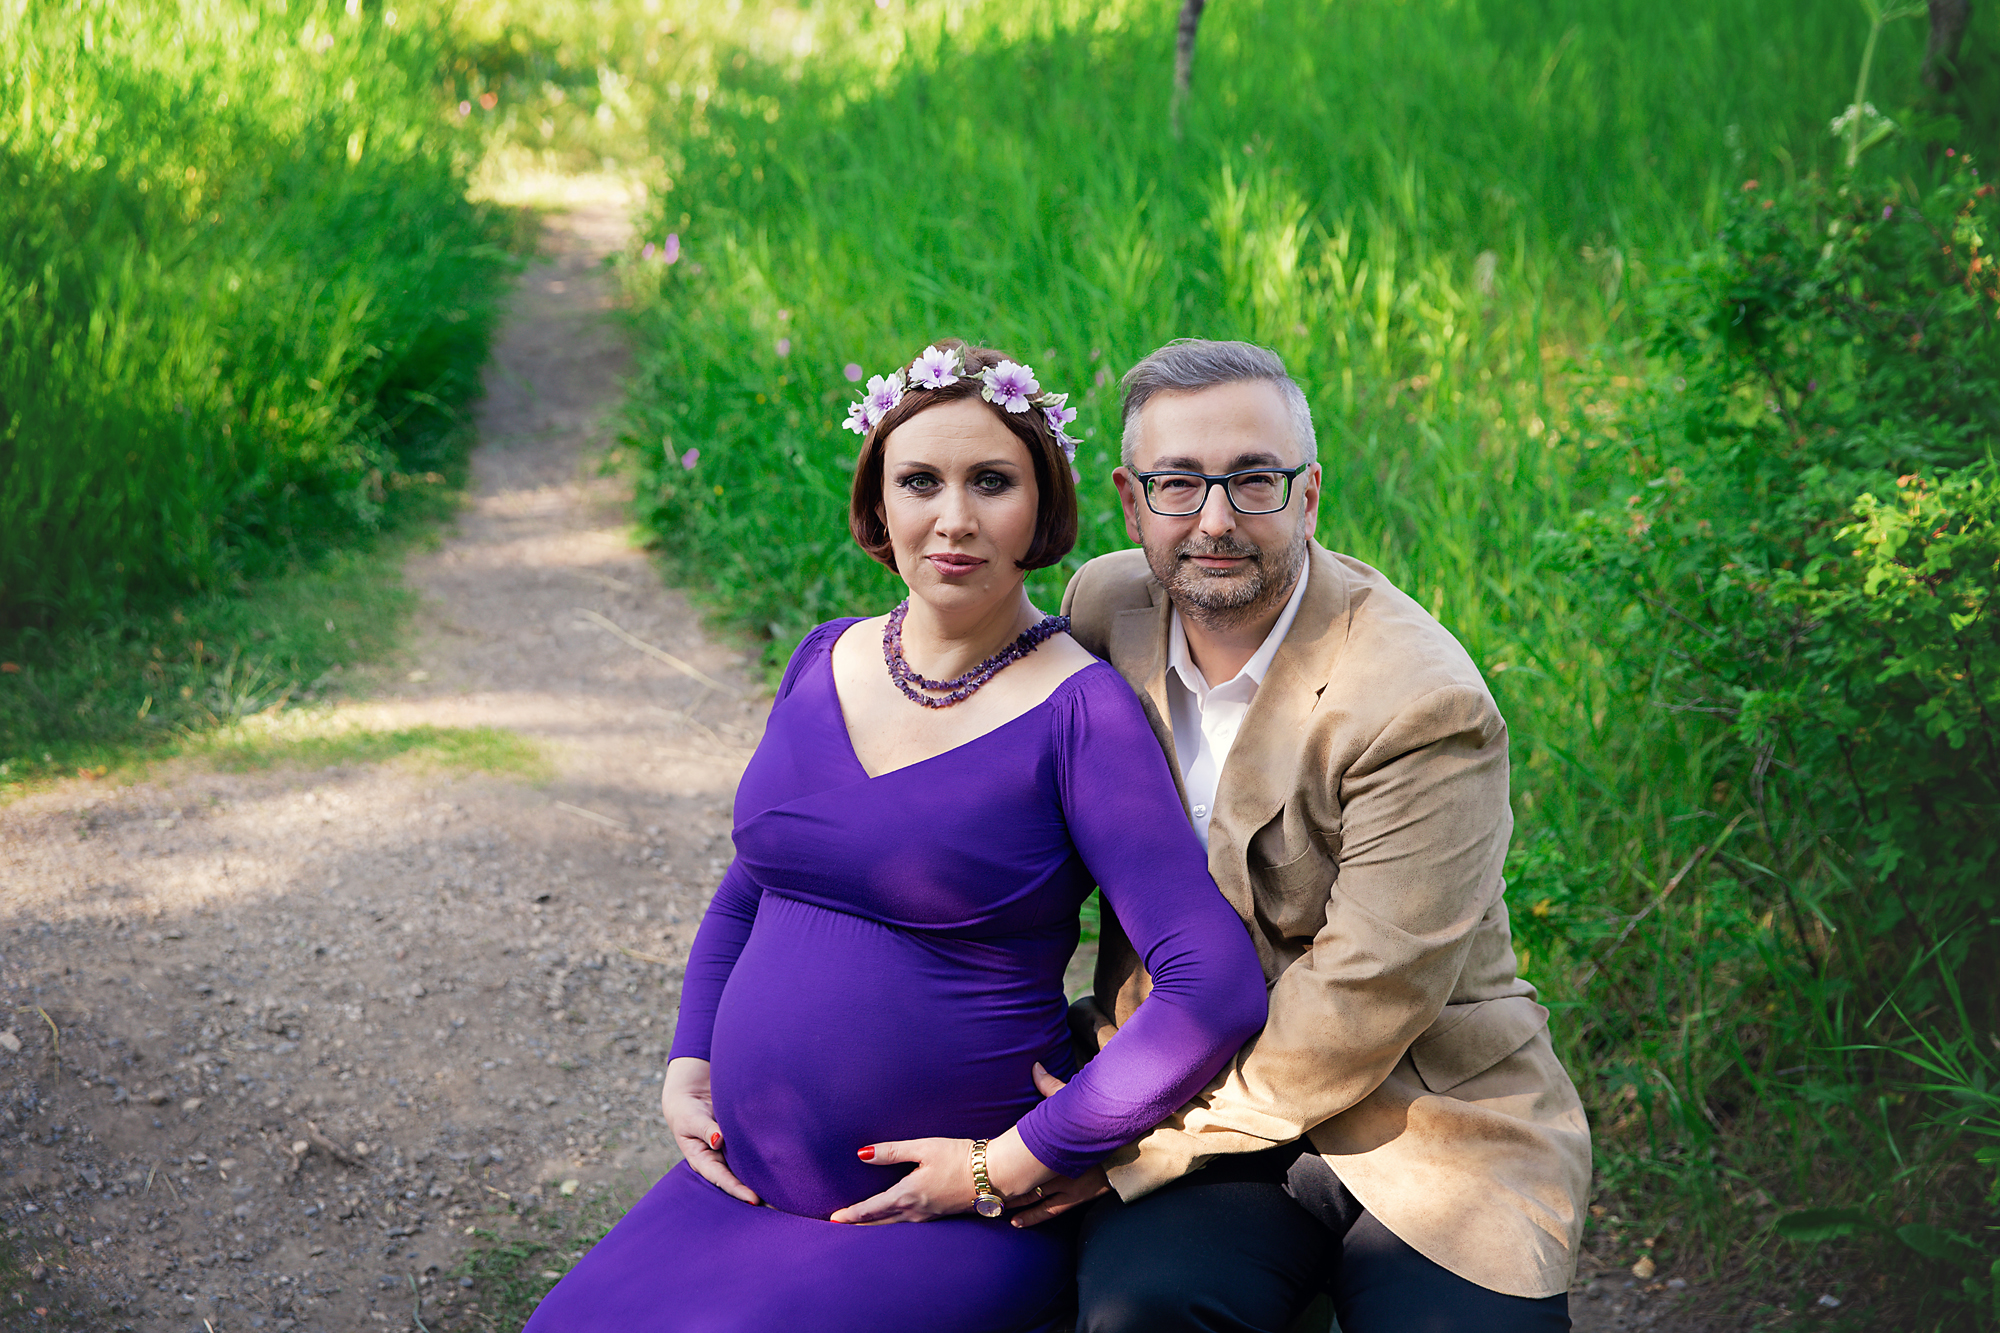 Parents-to-be during a maternity photoshoot. Calgary and Airdrie Maternity photographer